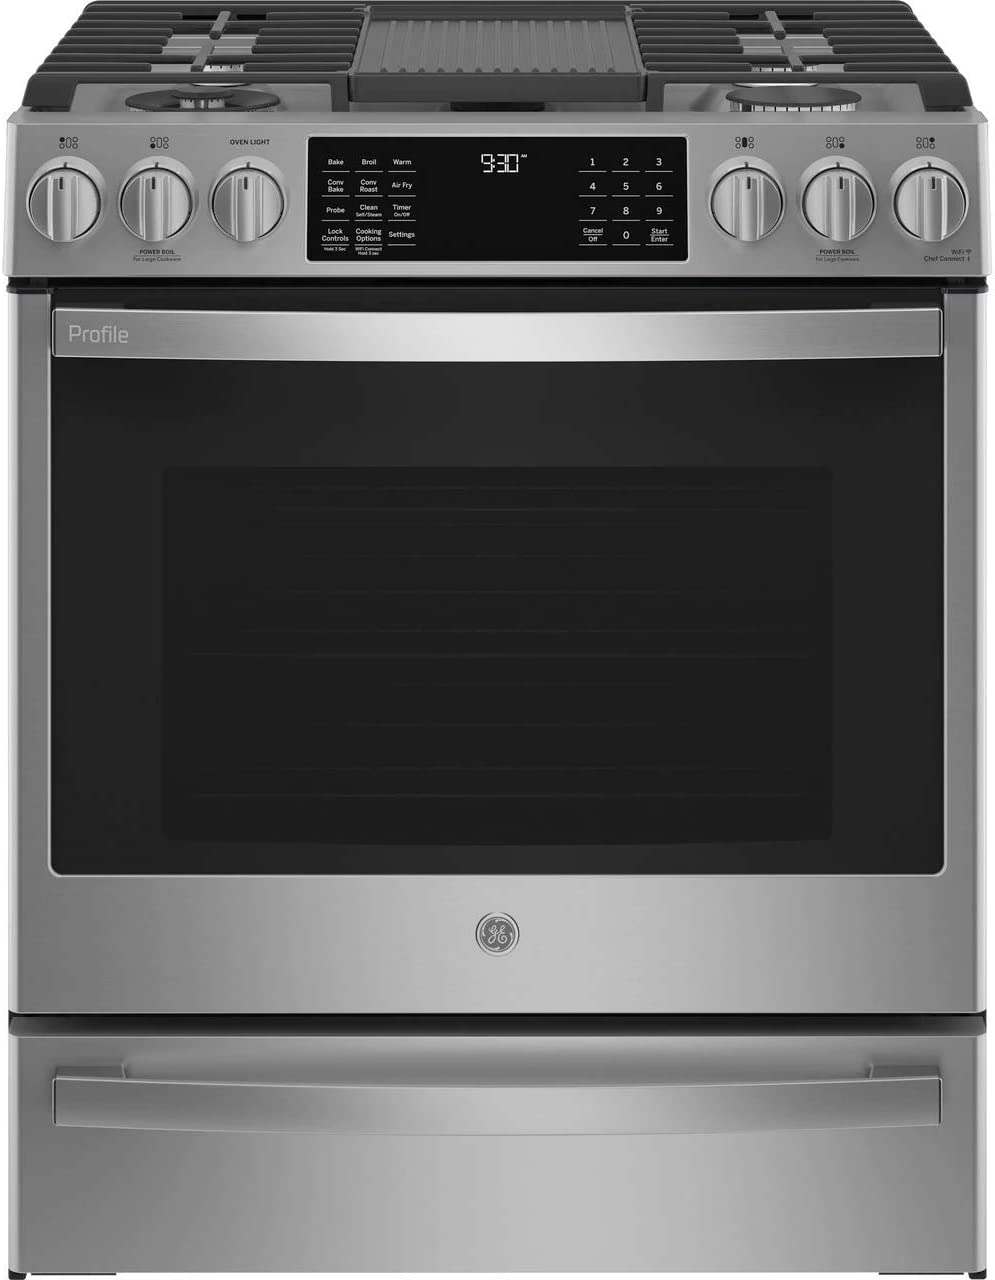 """GE Profile PGS930YPFS 30"""" Smart Slide-In Gas Range with 5 Sealed Burners, 5.6 Cu. Ft. True Convection Oven, ADA Compliant, and Star-K Certified: Fingerprint Resistant Stainless Steel"""